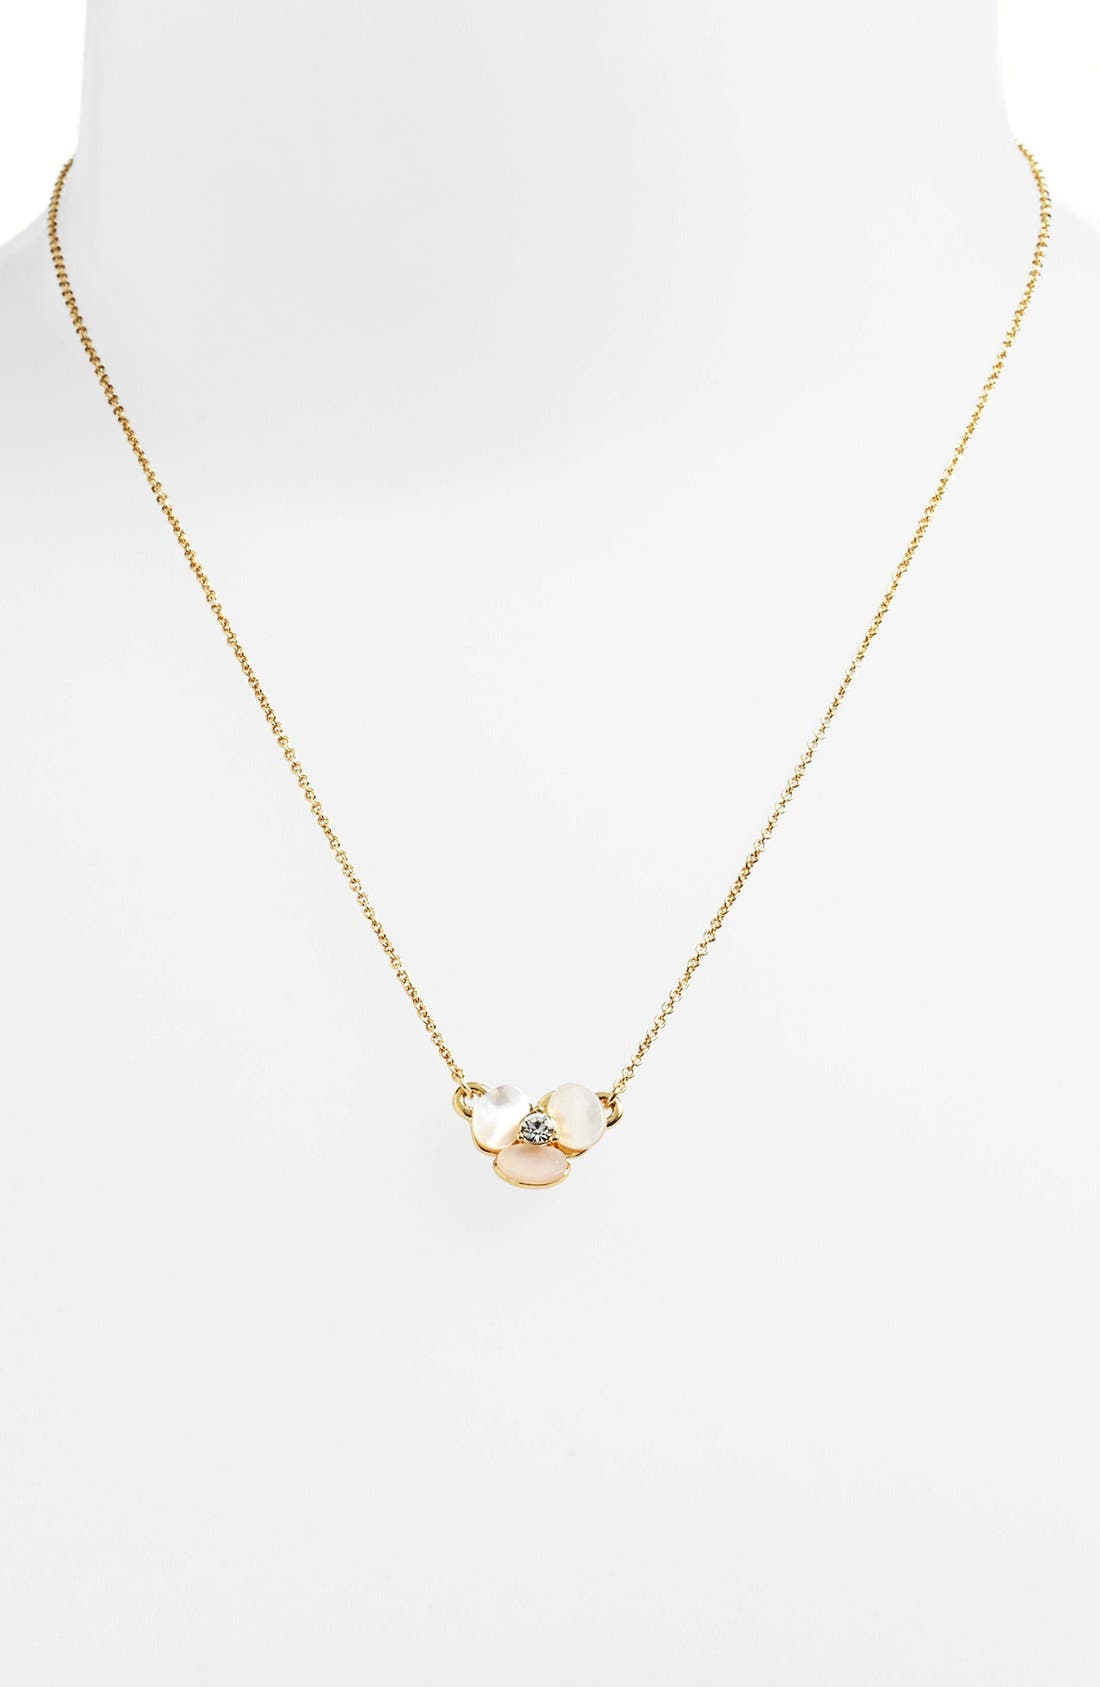 KATE SPADE NEW YORK 'disco pansy' pendant necklace, Main, color, CREAM/ CLEAR/ GOLD